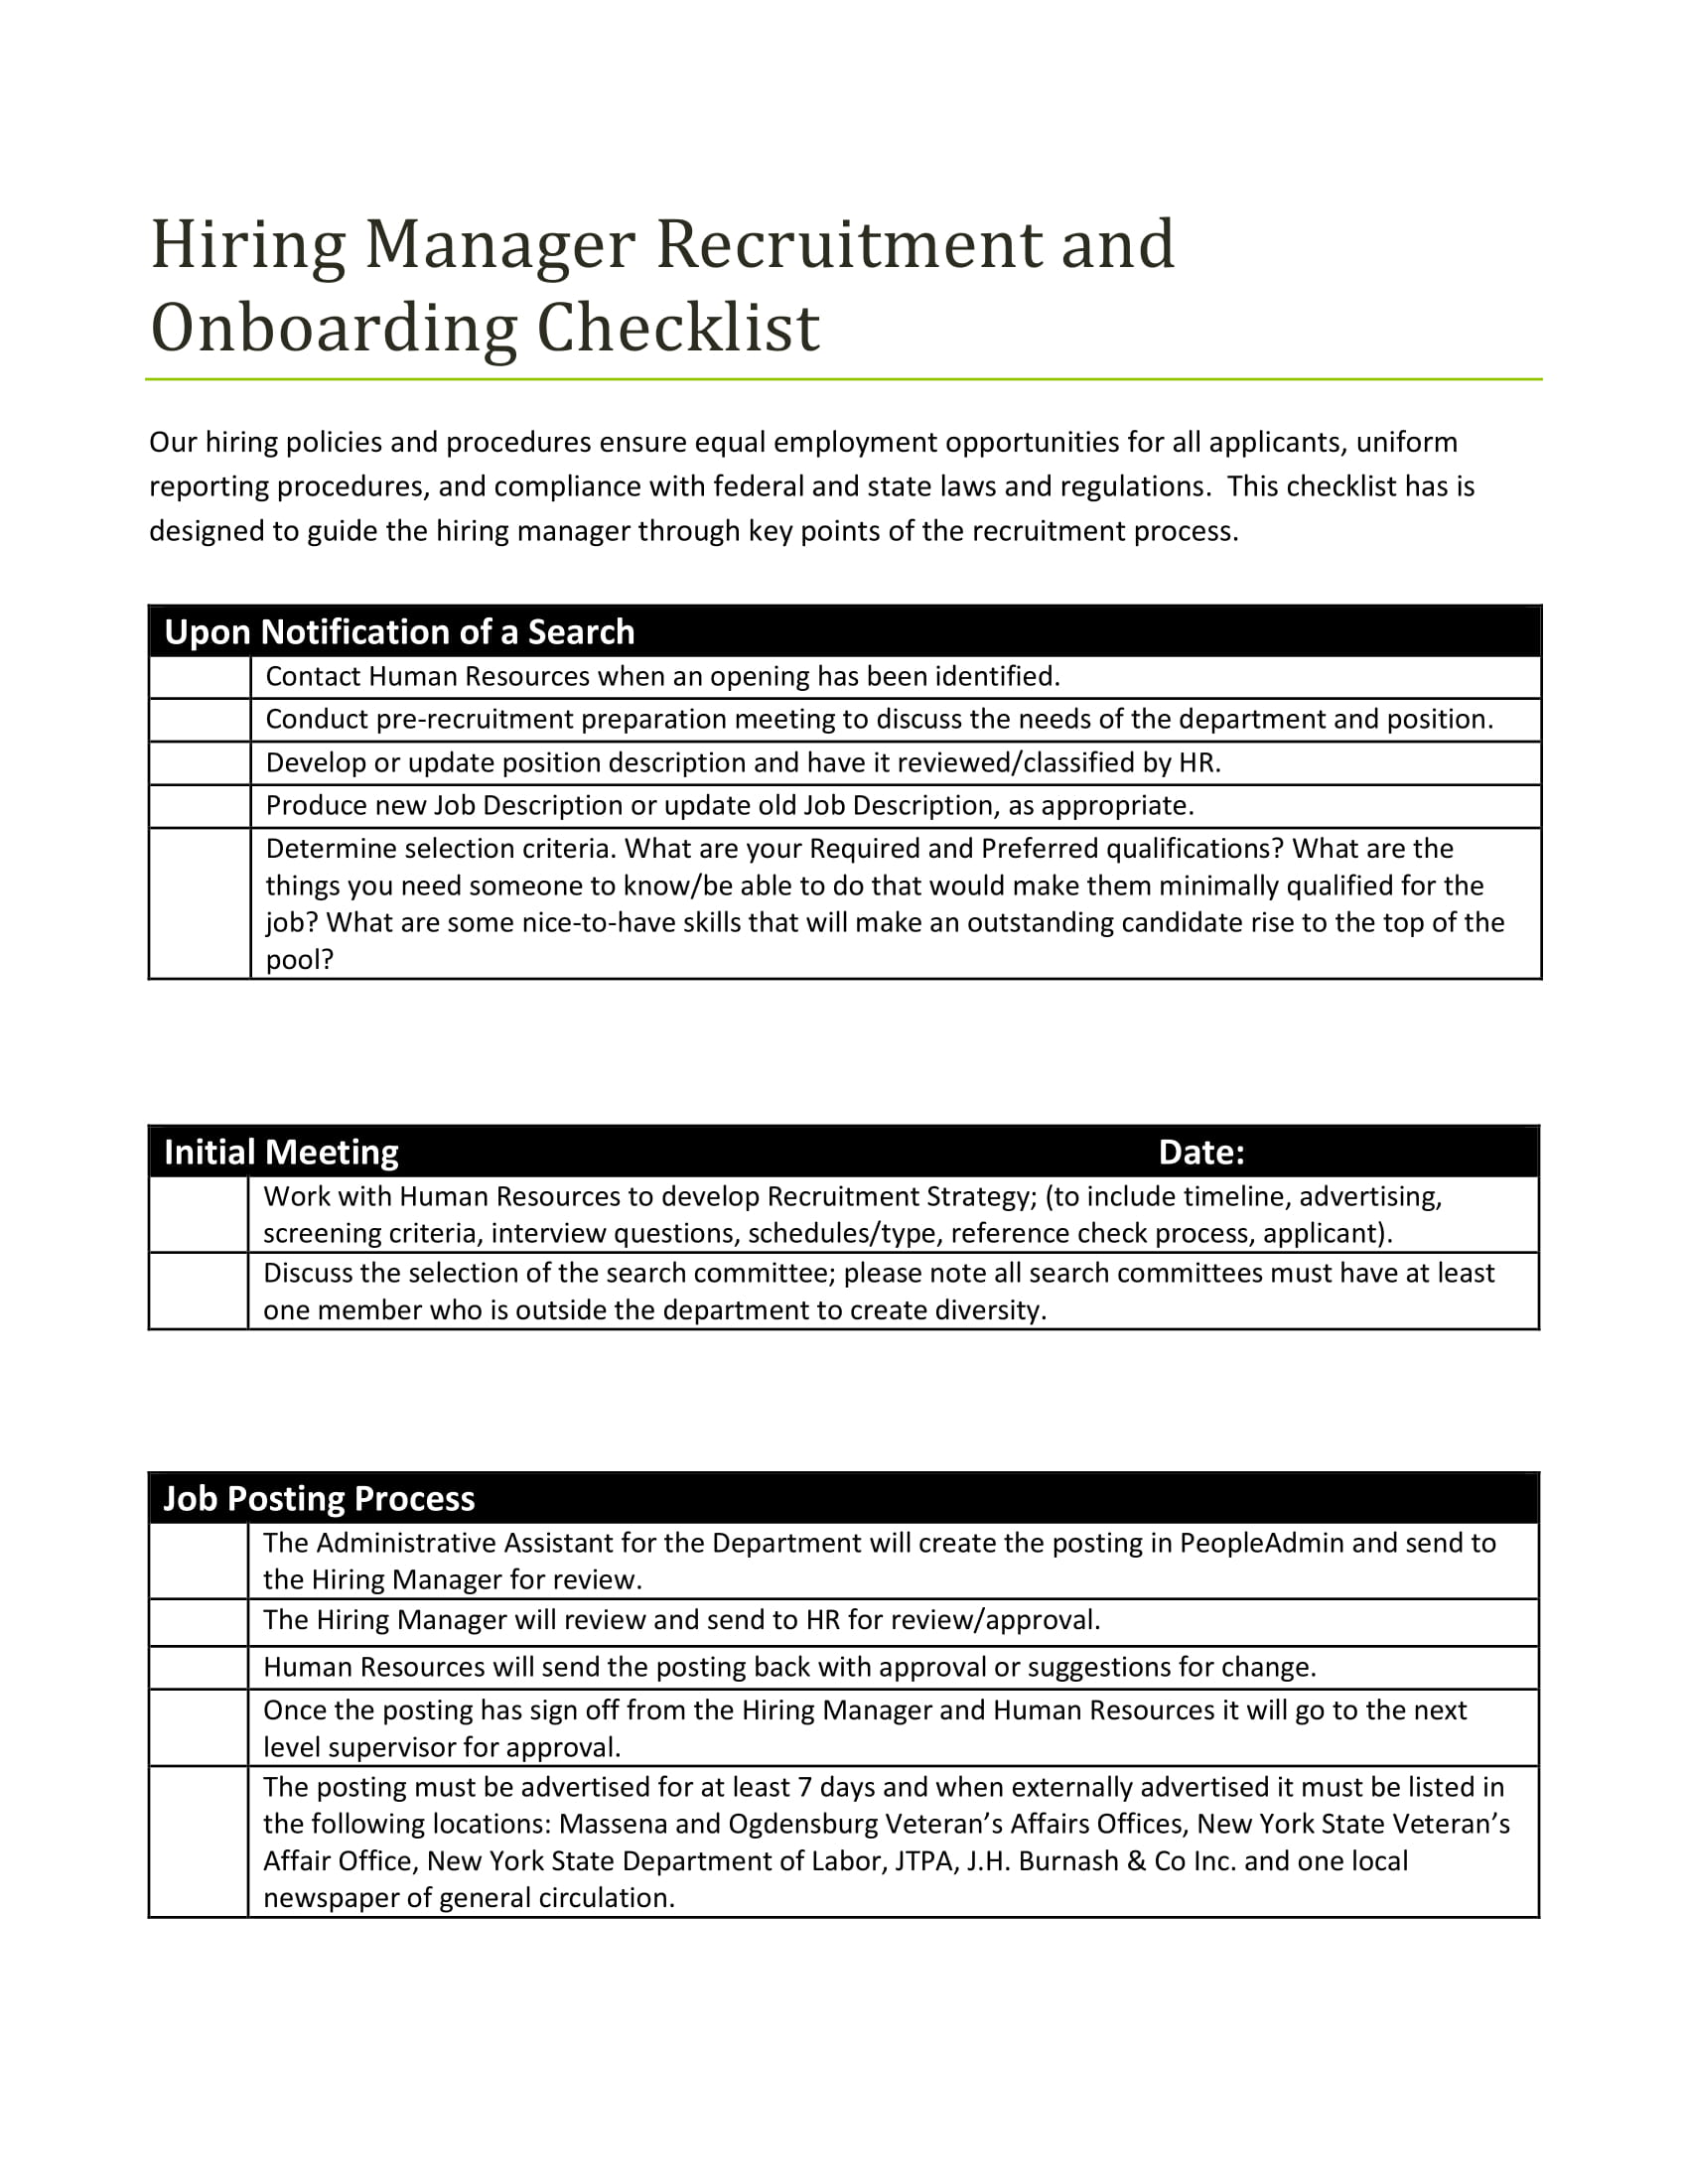 recruitment and hiring checklist